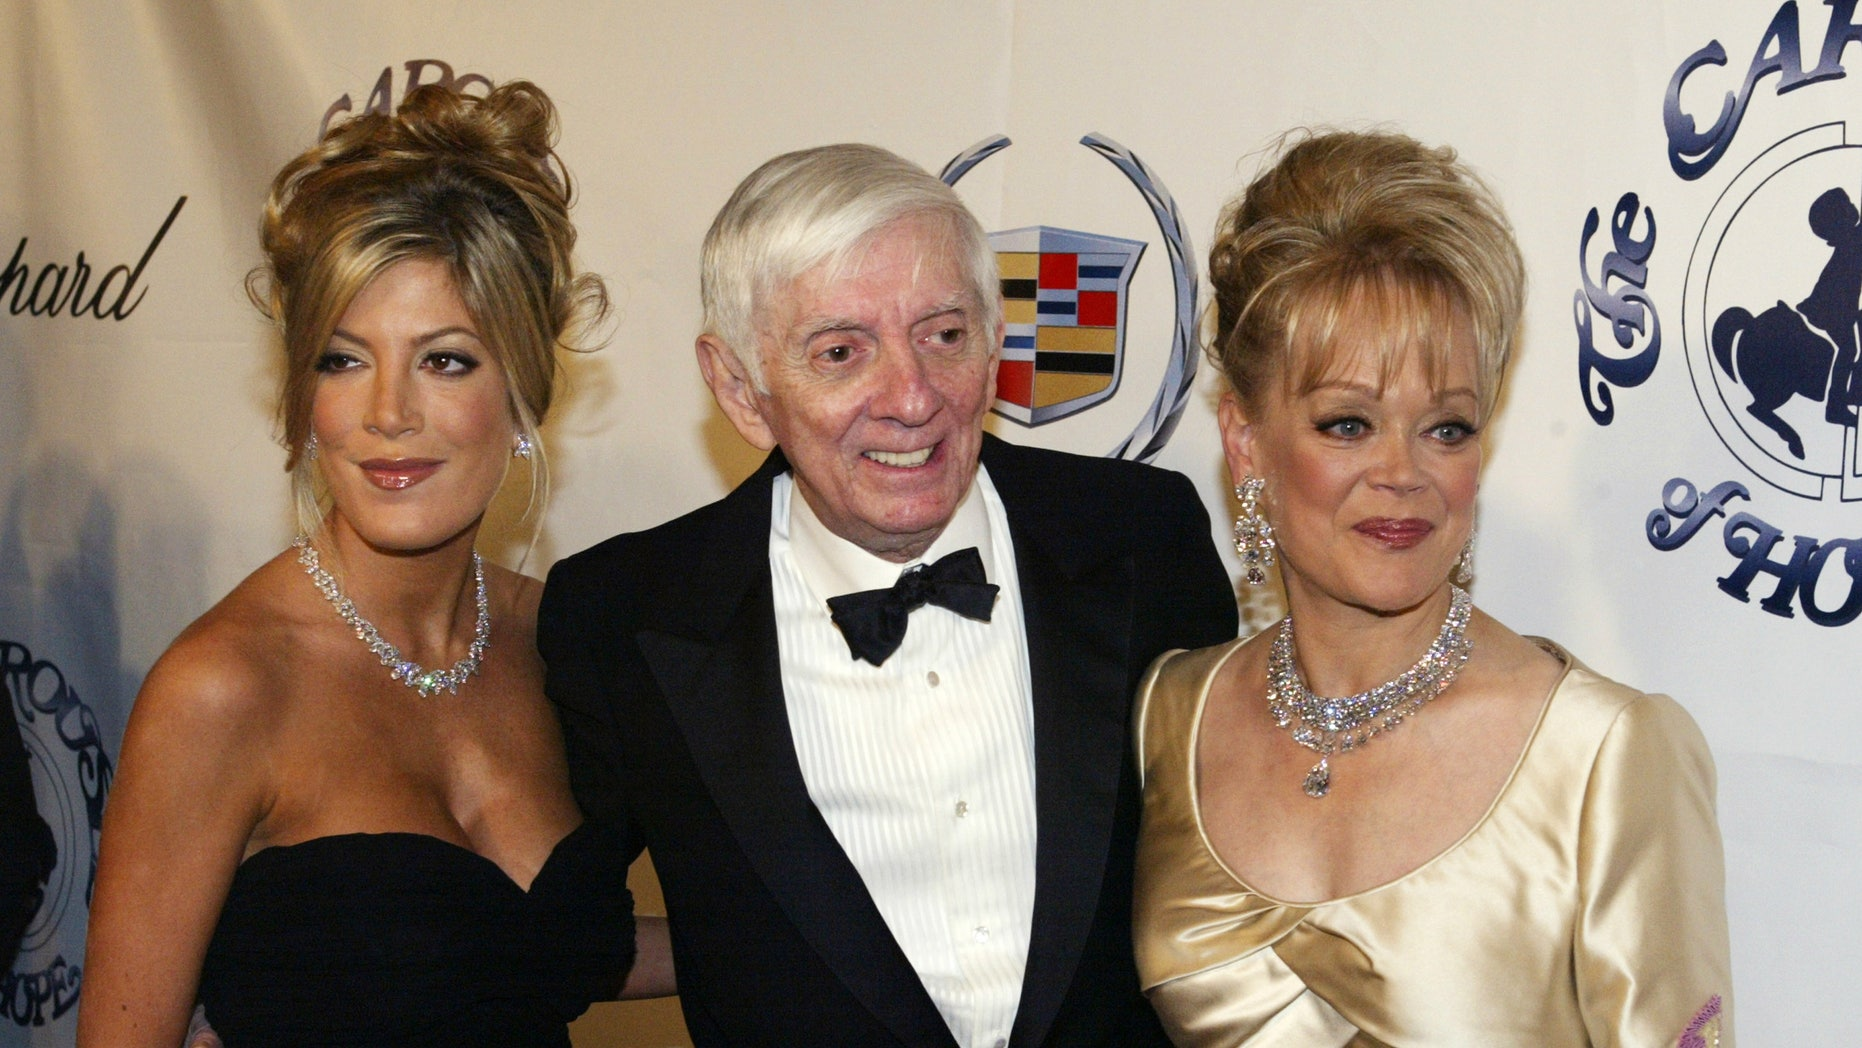 October 15, 2002. Actress Tori Spelling (L) is pictured with her mother Candy Spelling (R) and her late father, television producer Aaron Spelling, at the Carousel of Hope charity ball in Beverly Hills, California.